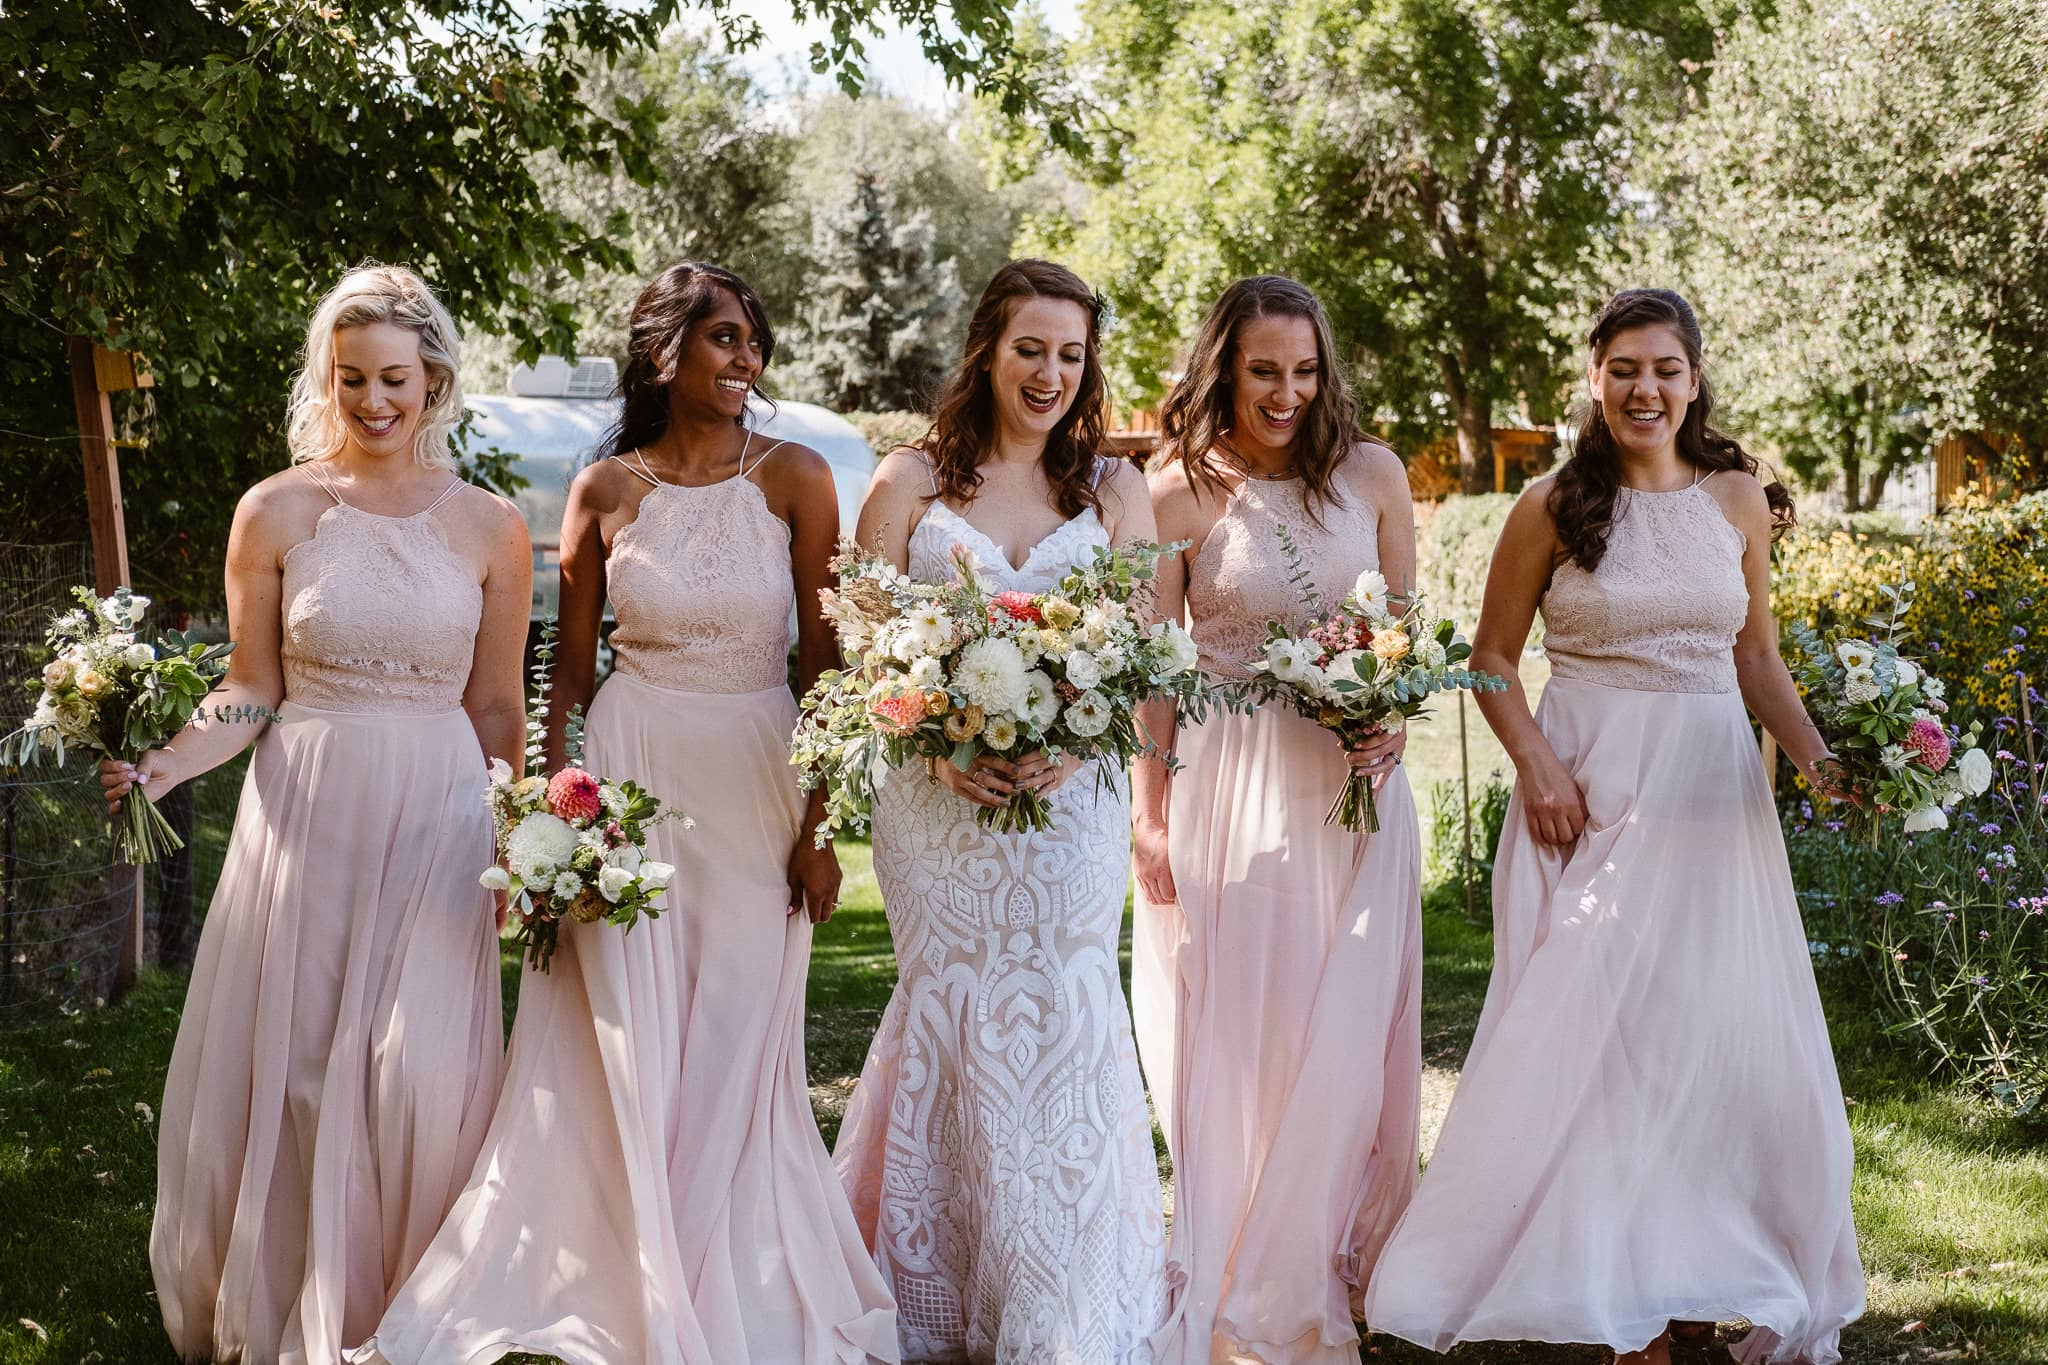 Lyons Farmette wedding photographer, Colorado intimate wedding photographer, bride and bridesmaids in flower gardens, bridal party photos, wedding party photos, bridesmaids in dusty pink dresses, rue de seine wedding dress